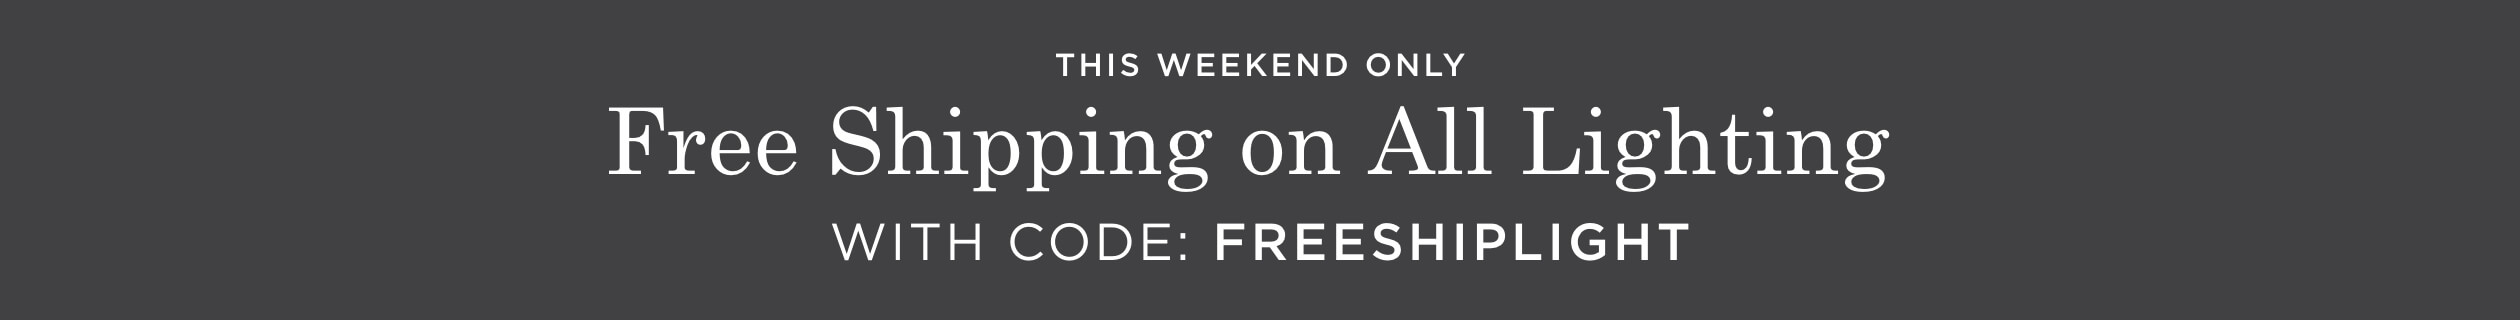 Free Shipping on All Lighting with Code: FREESHIPLIGHT